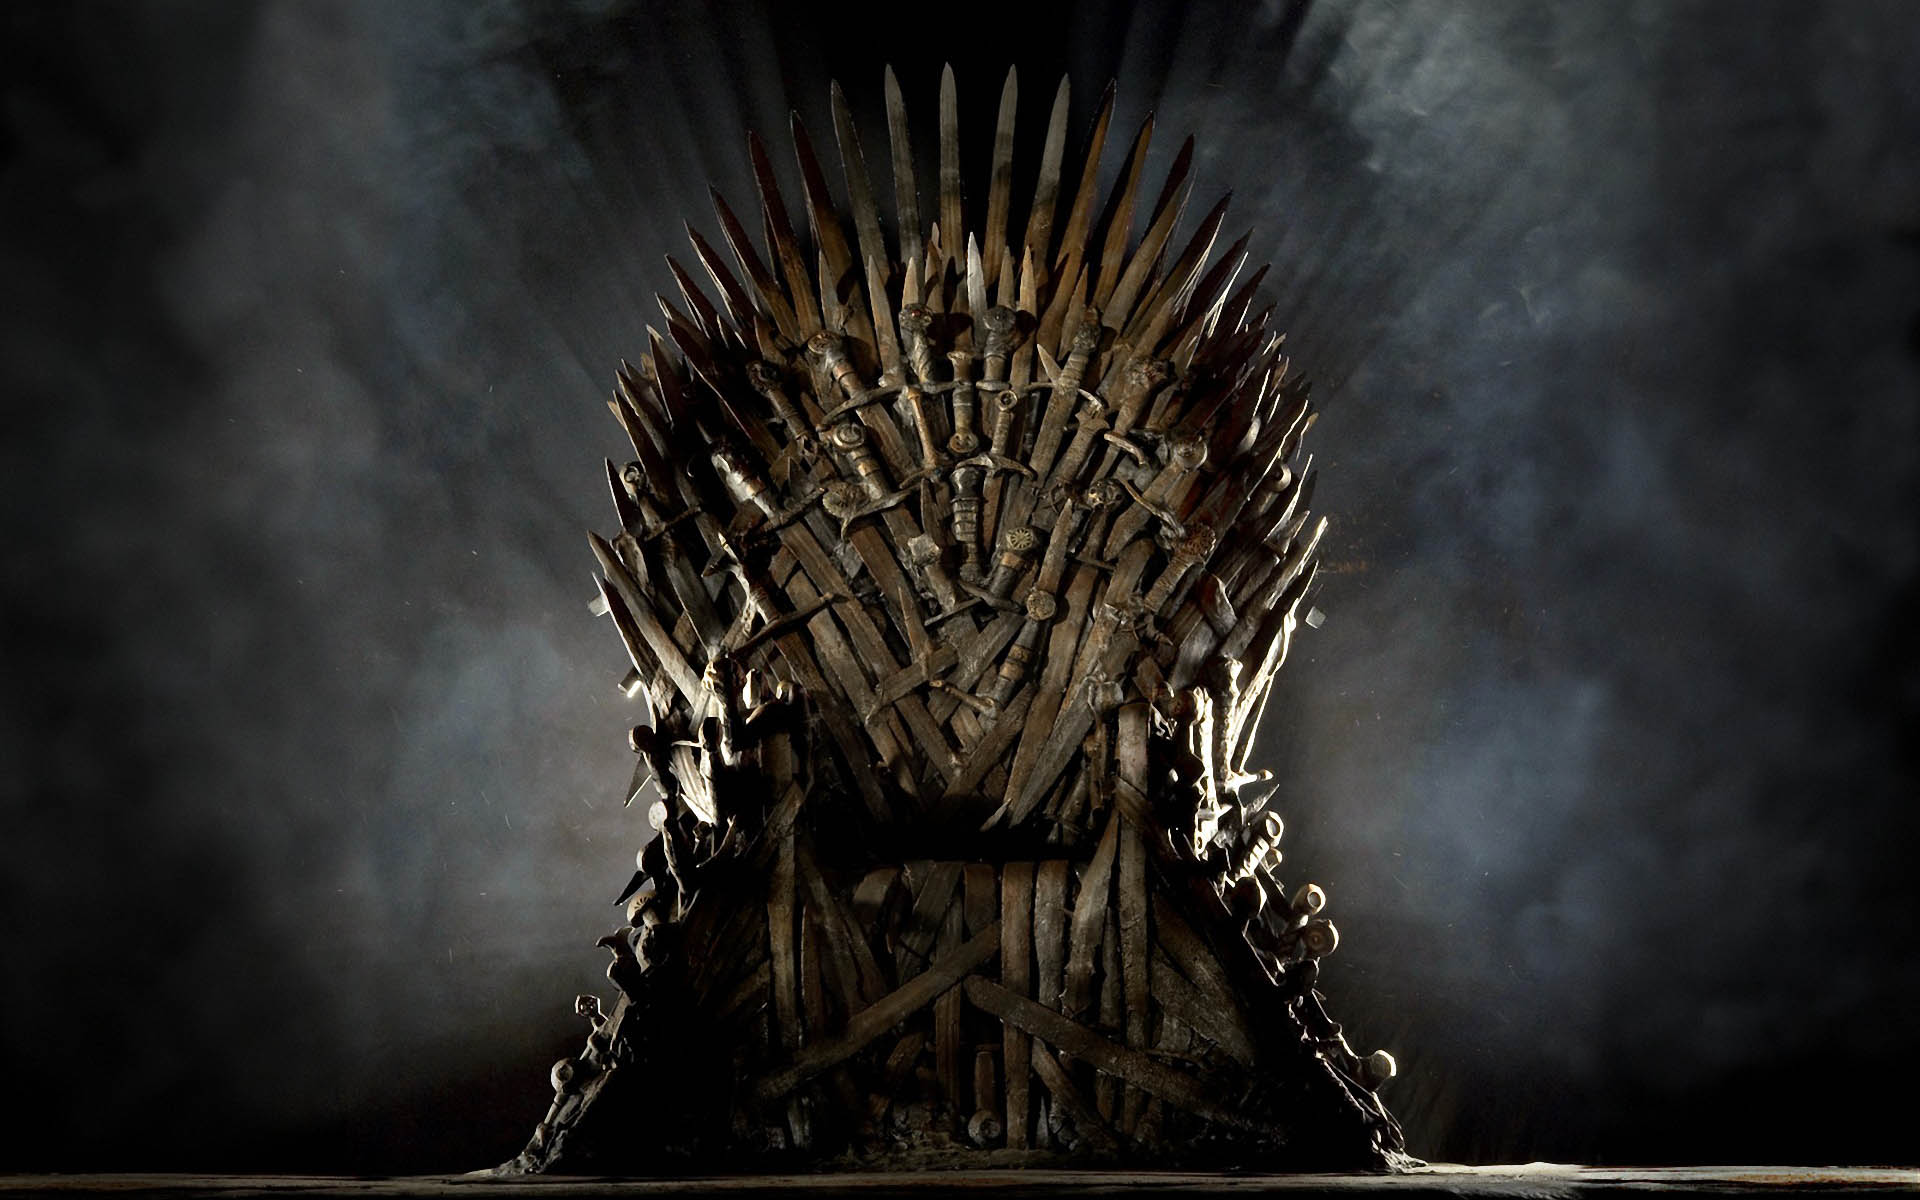 Game of Thrones: Westeros secondo George R.R. Martin